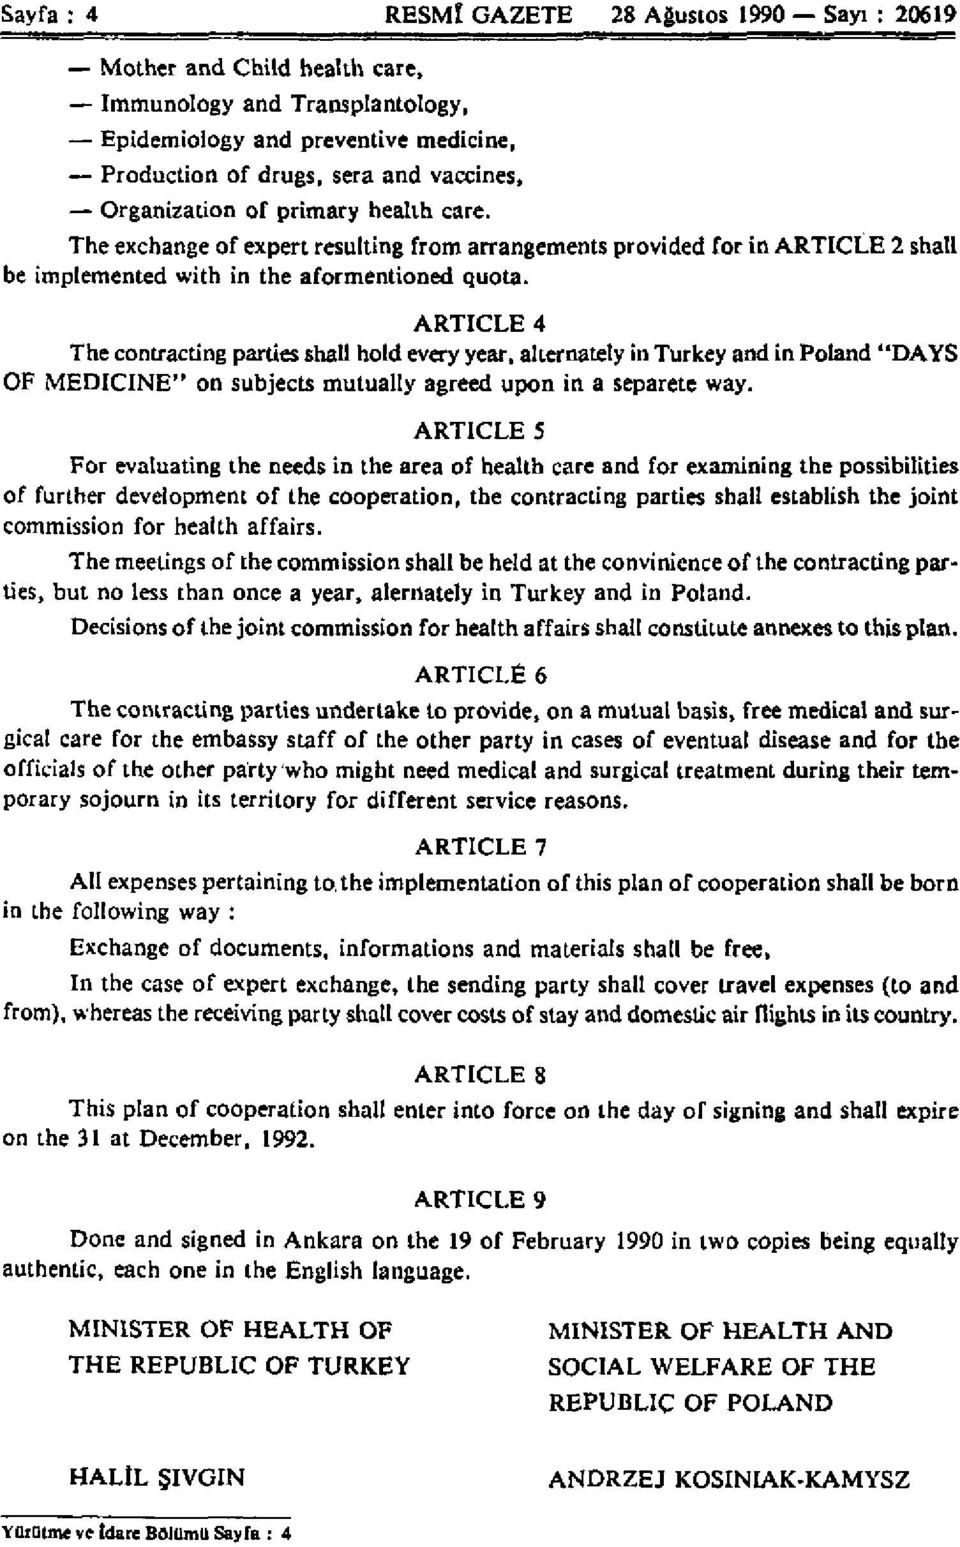 "ARTICLE 4 The contracting parties shall hold every year, alternately in Turkey and in Poland ""DAYS OF MEDICINE"" on subjects mutually agreed upon in a separete way."